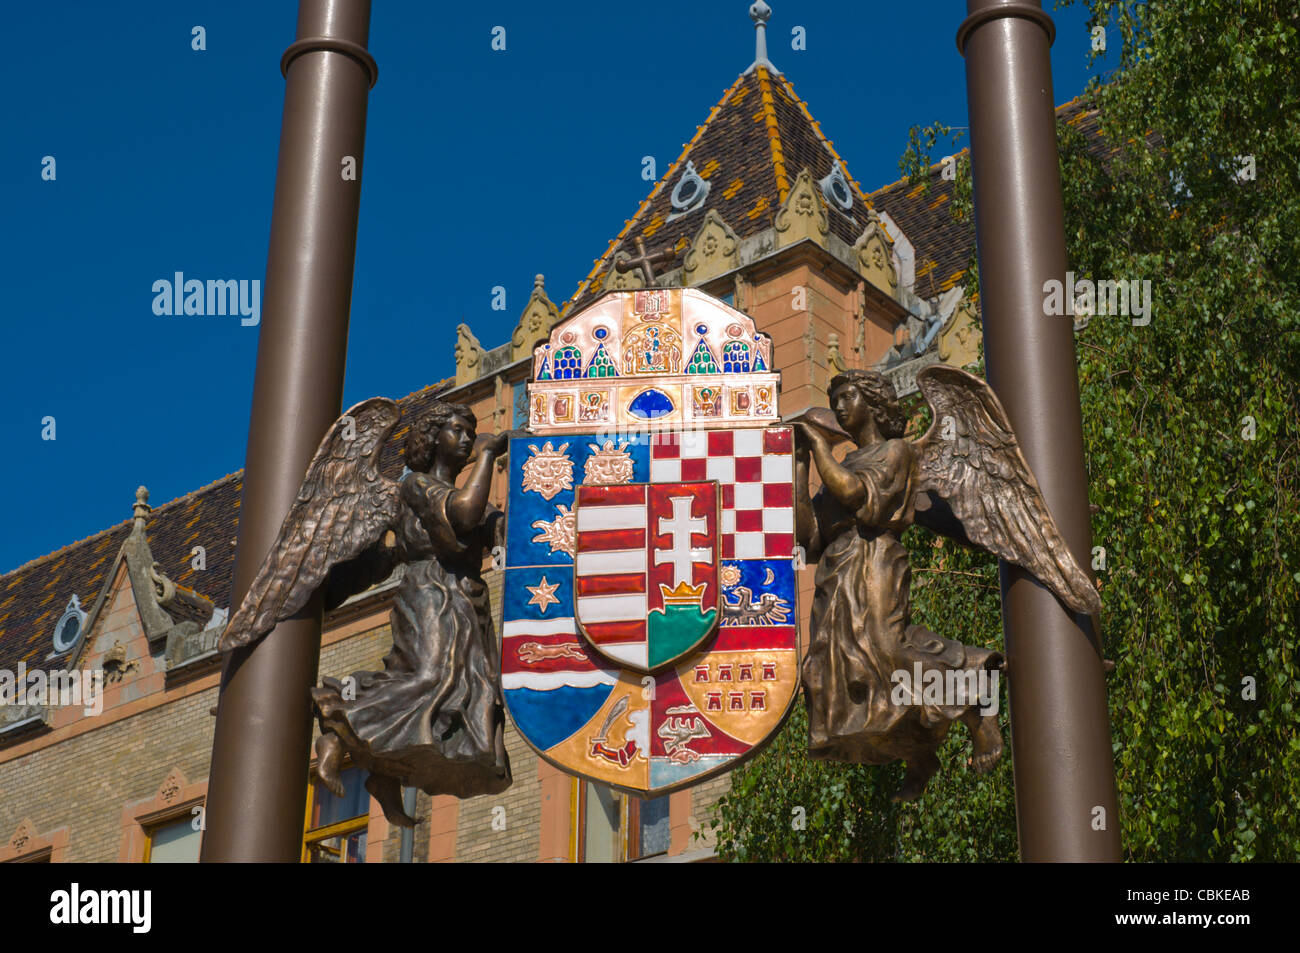 Coat of arms outside Town hall at Kossuth Lajos ter square Belvaros the city centre Kecskemet Hungary Europe - Stock Image